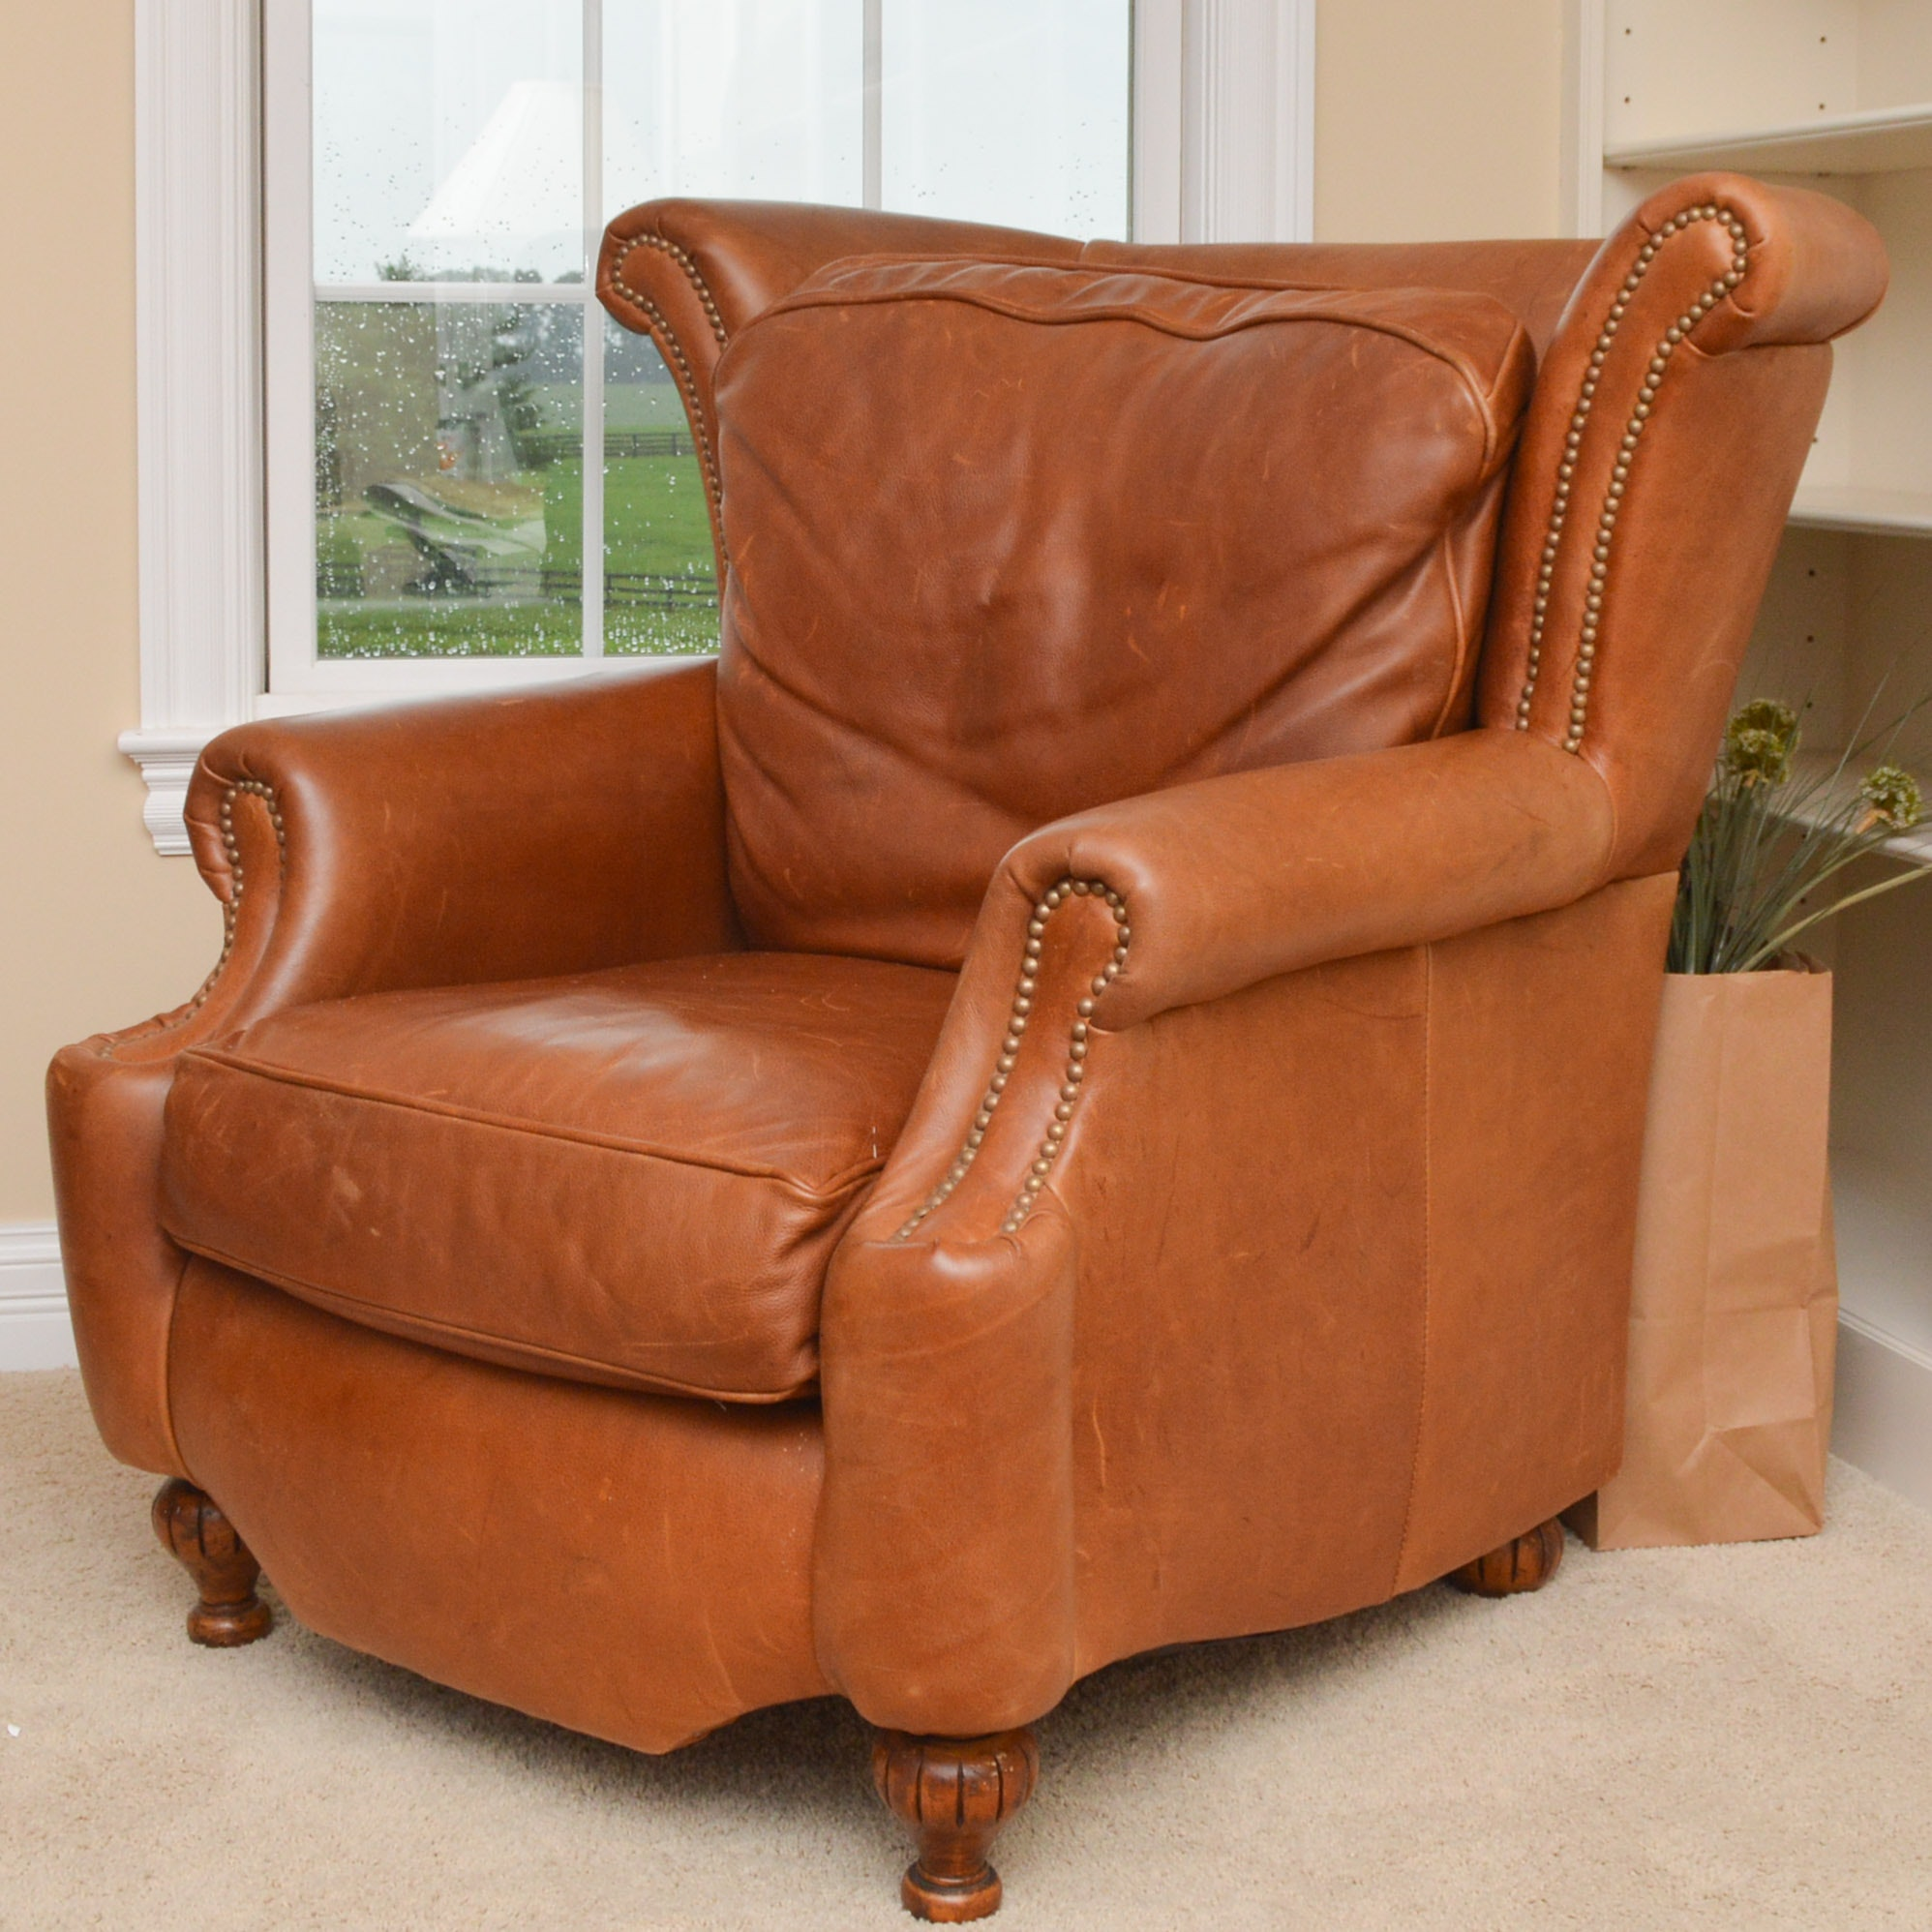 Tan Leather Armchair with Brass Rivets